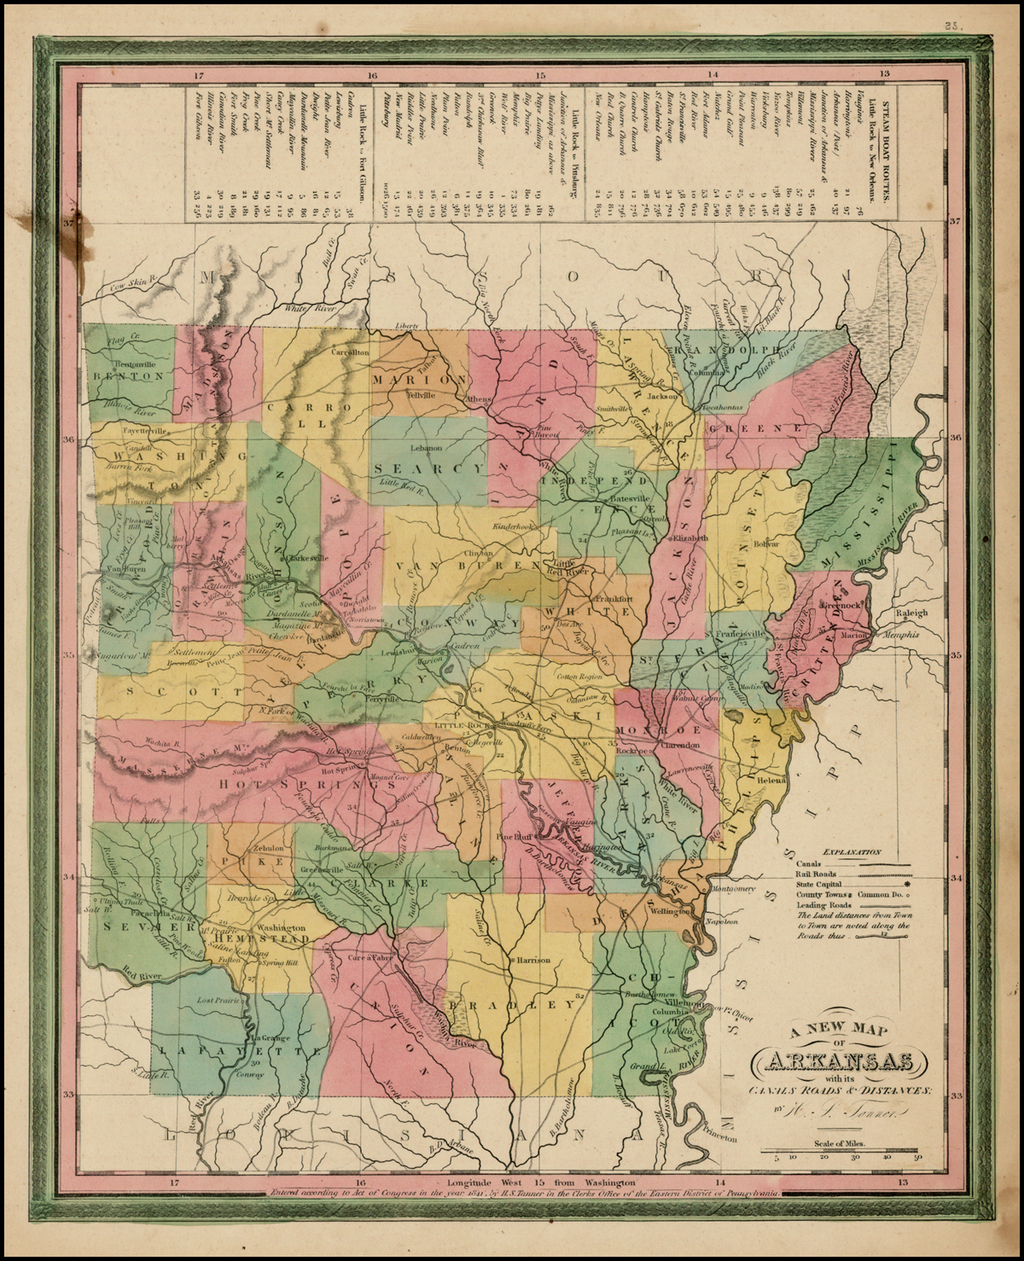 A New Map of Arkansas with its Canals Roads & Distances By Henry Schenk Tanner